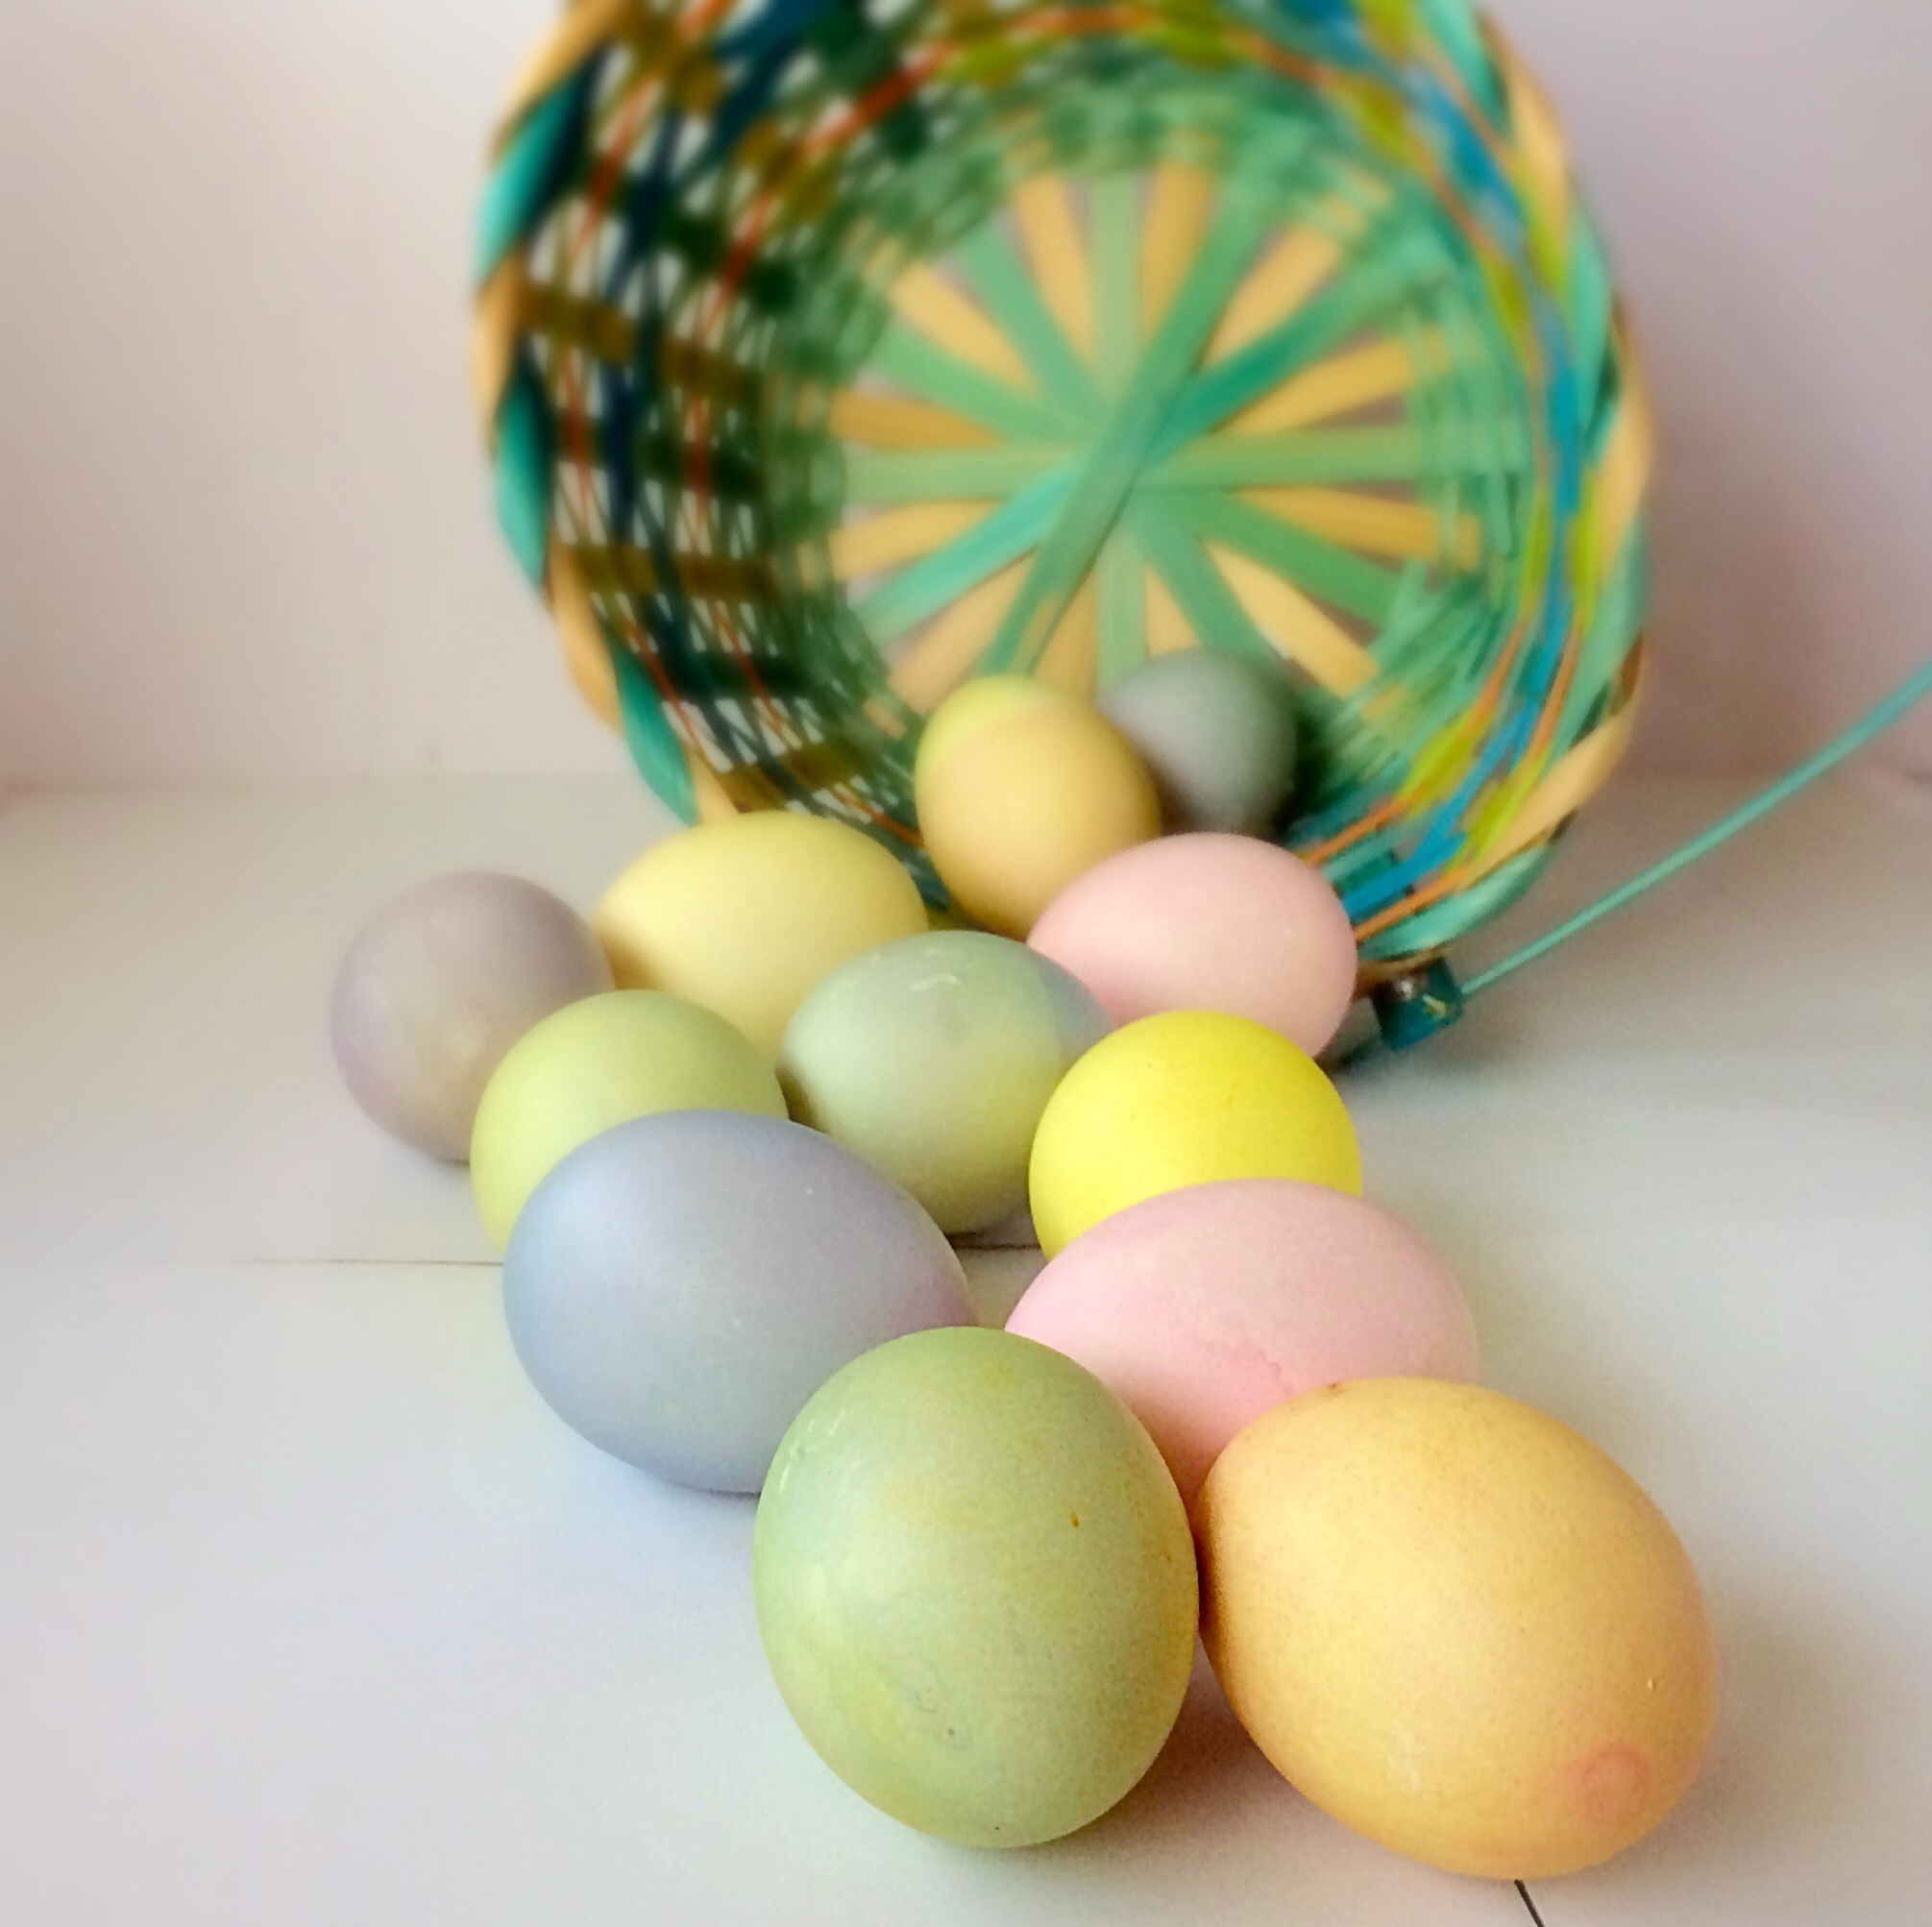 Naturally-Dyed Easter Eggs | Fun Family Crafts